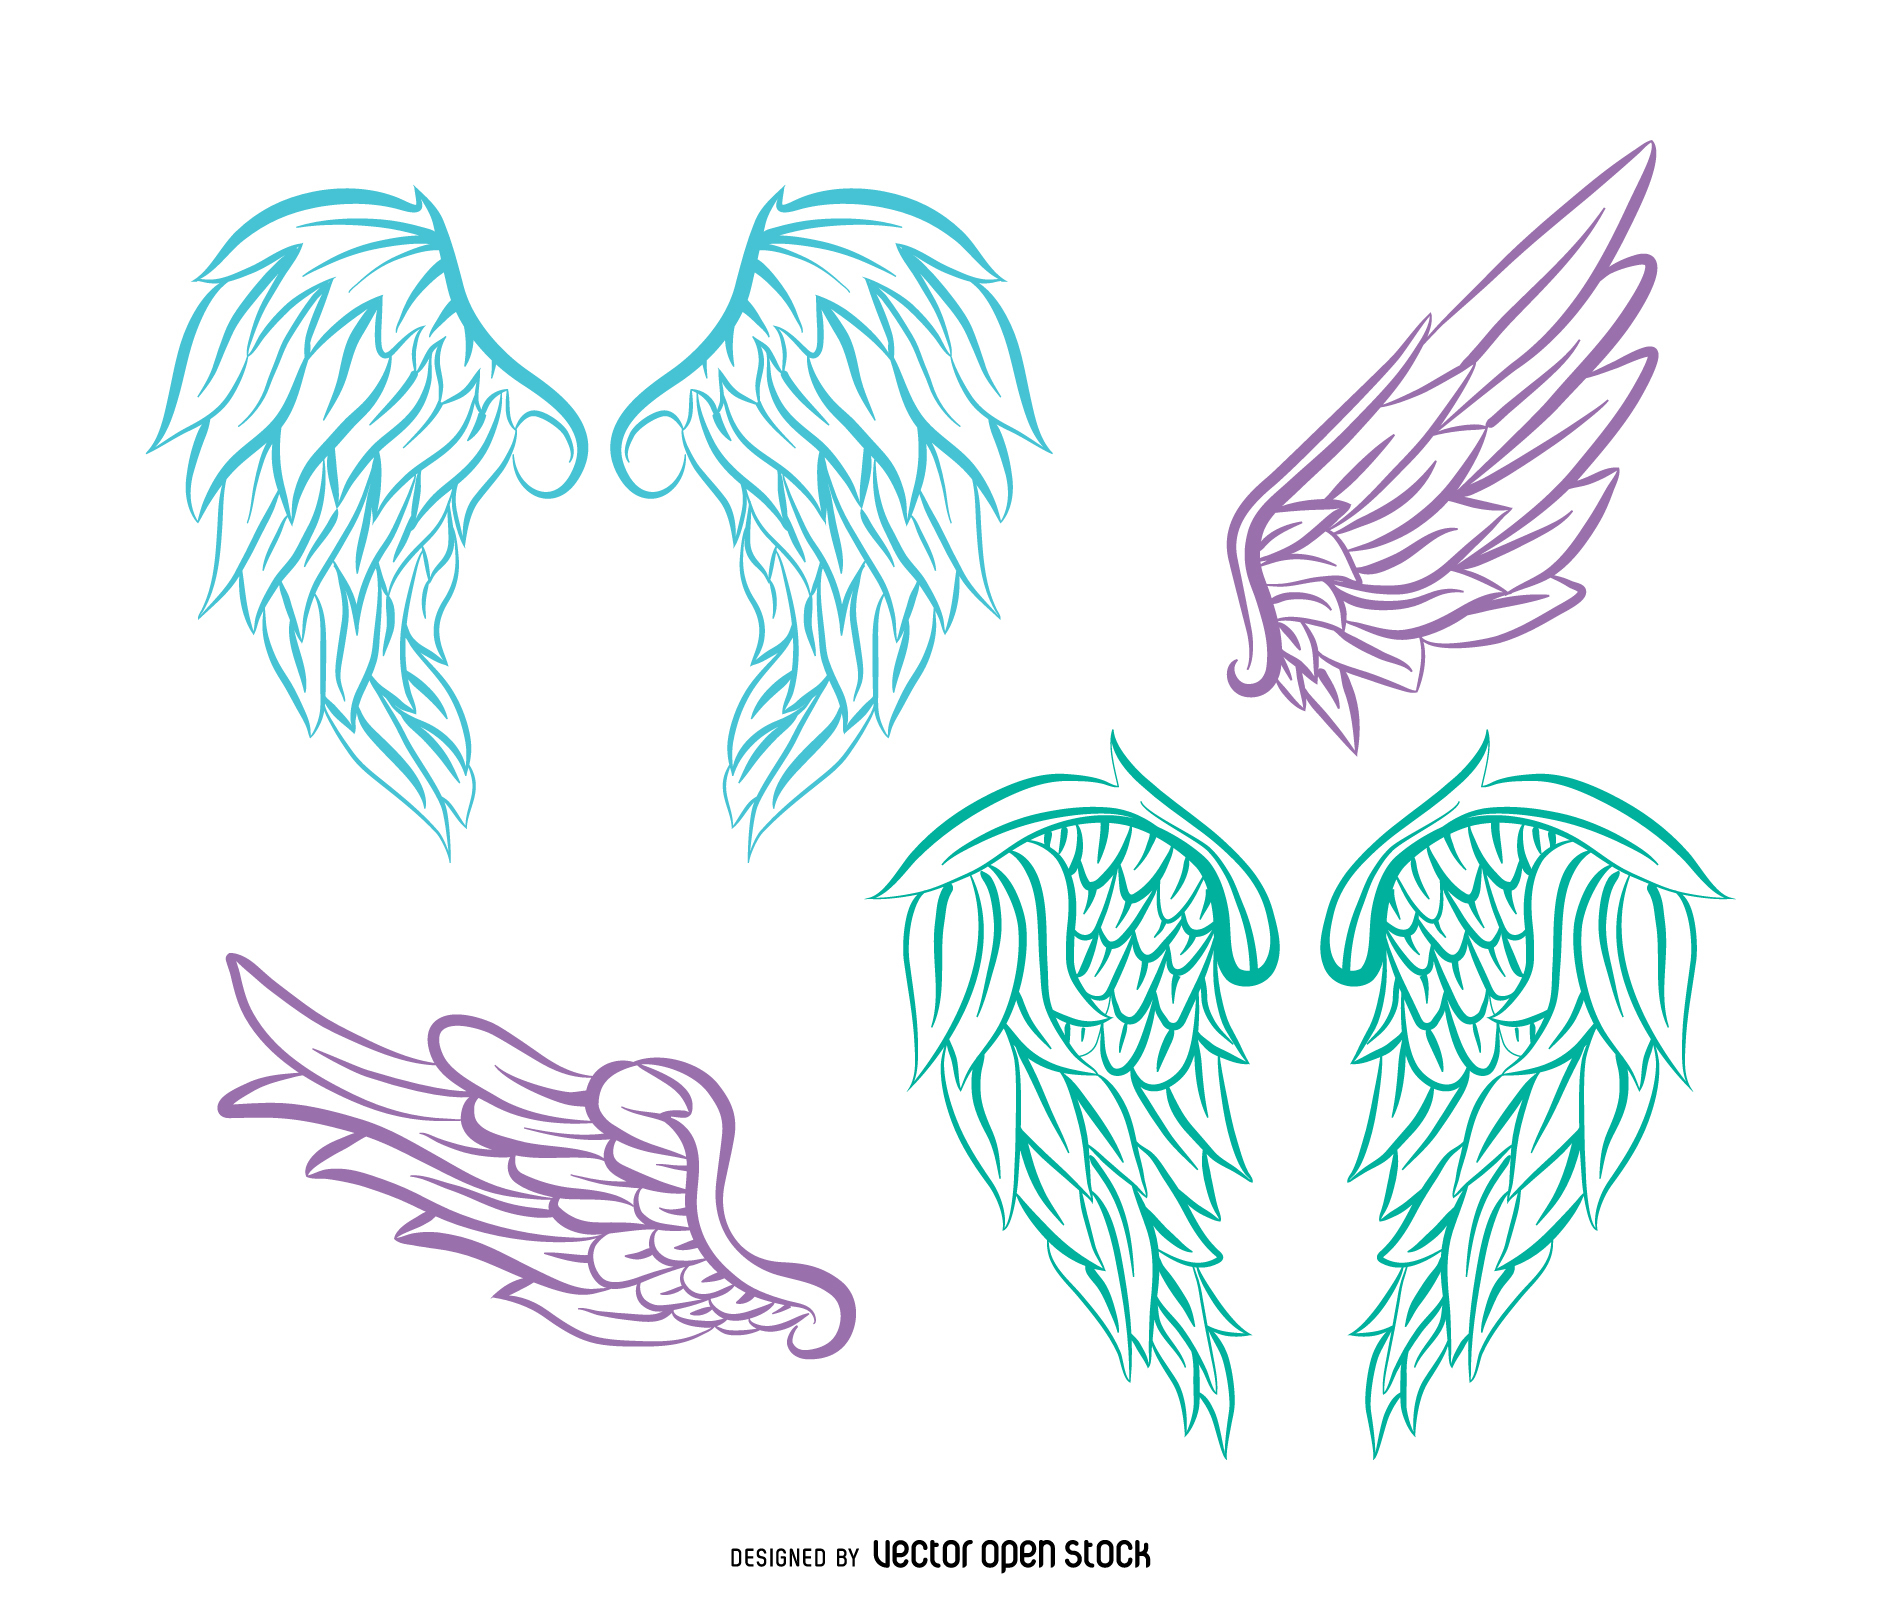 Angel Wings Drawing at GetDrawings.com | Free for personal use Angel ...